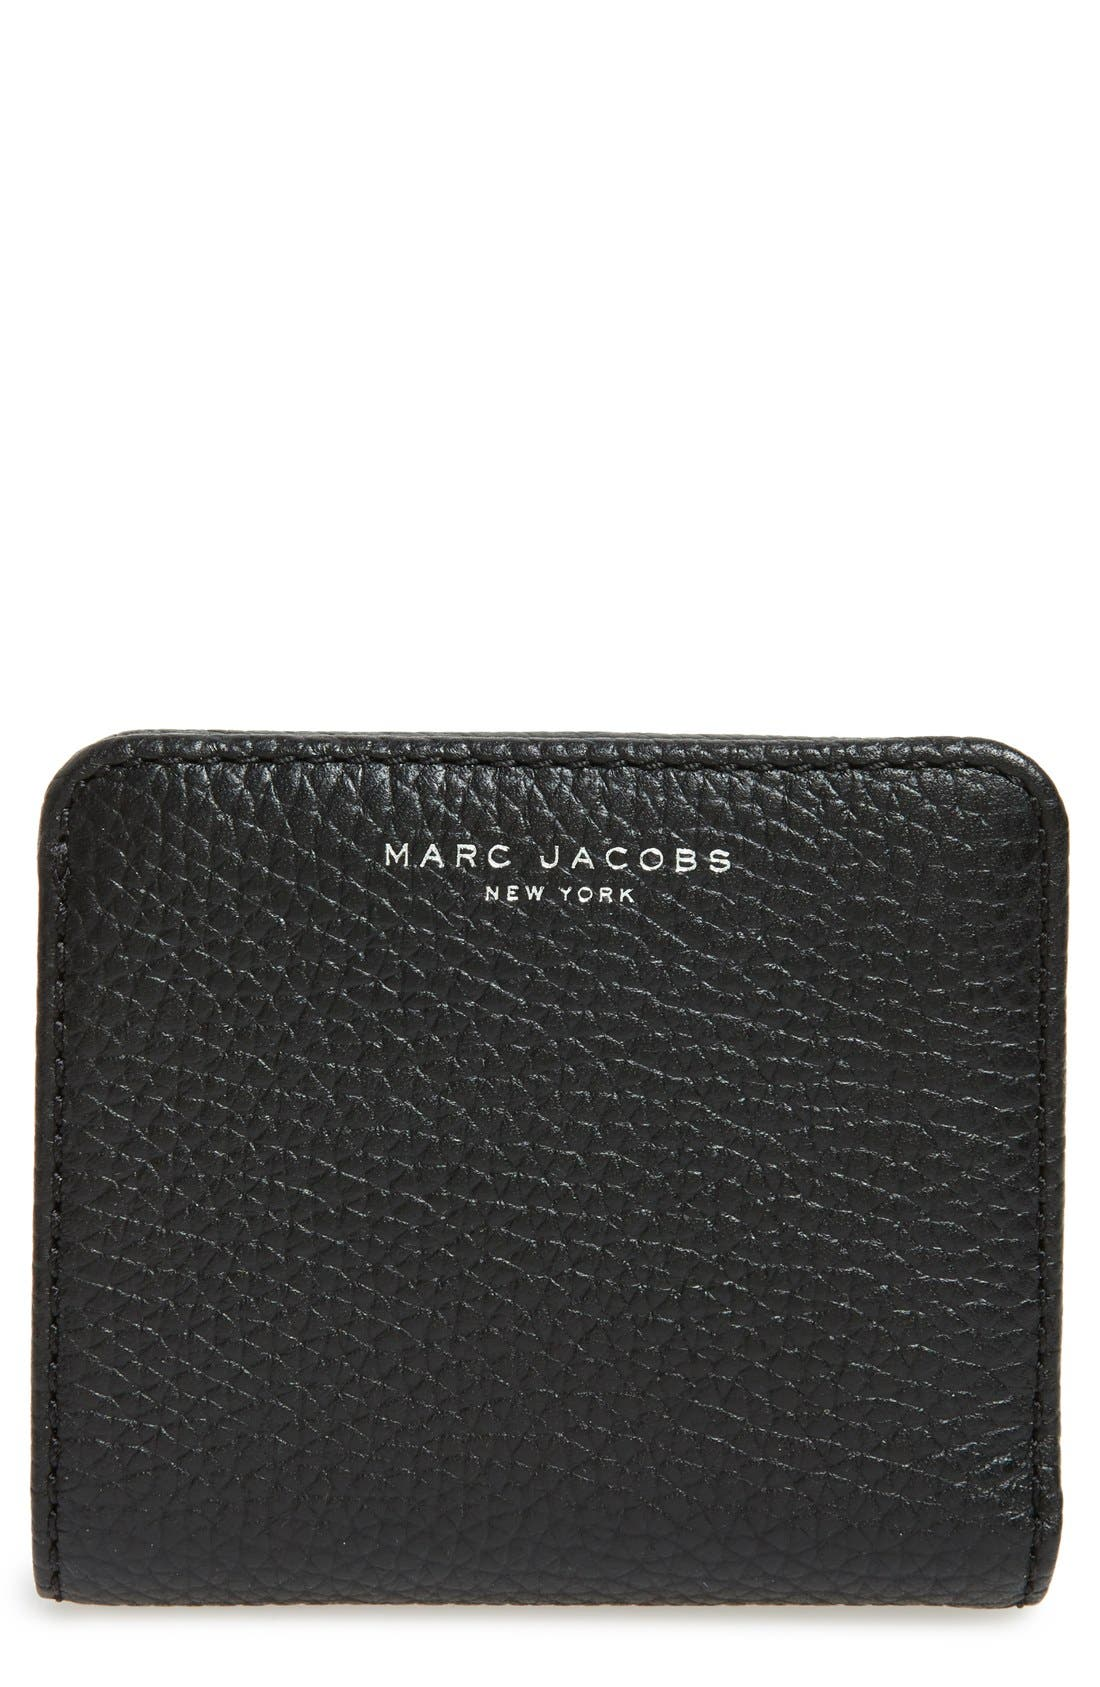 Alternate Image 1 Selected - MARC JACOBS 'Gotham' Pebbled Leather Wallet